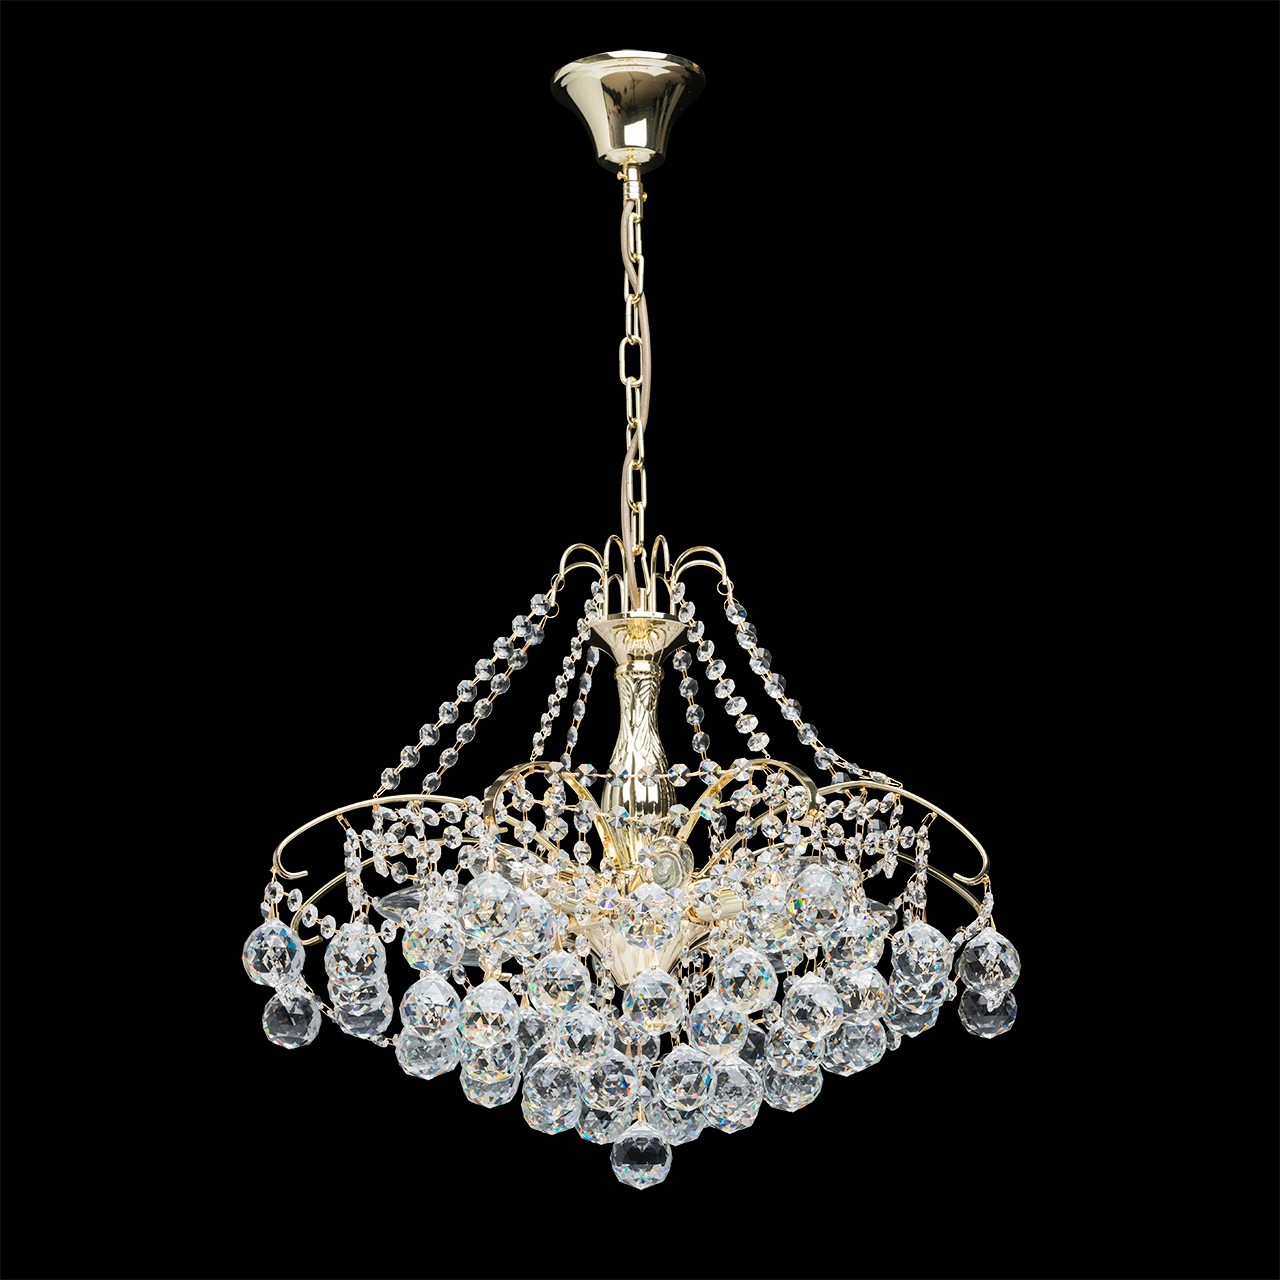 Candelabru Crystal 232017408 imagine